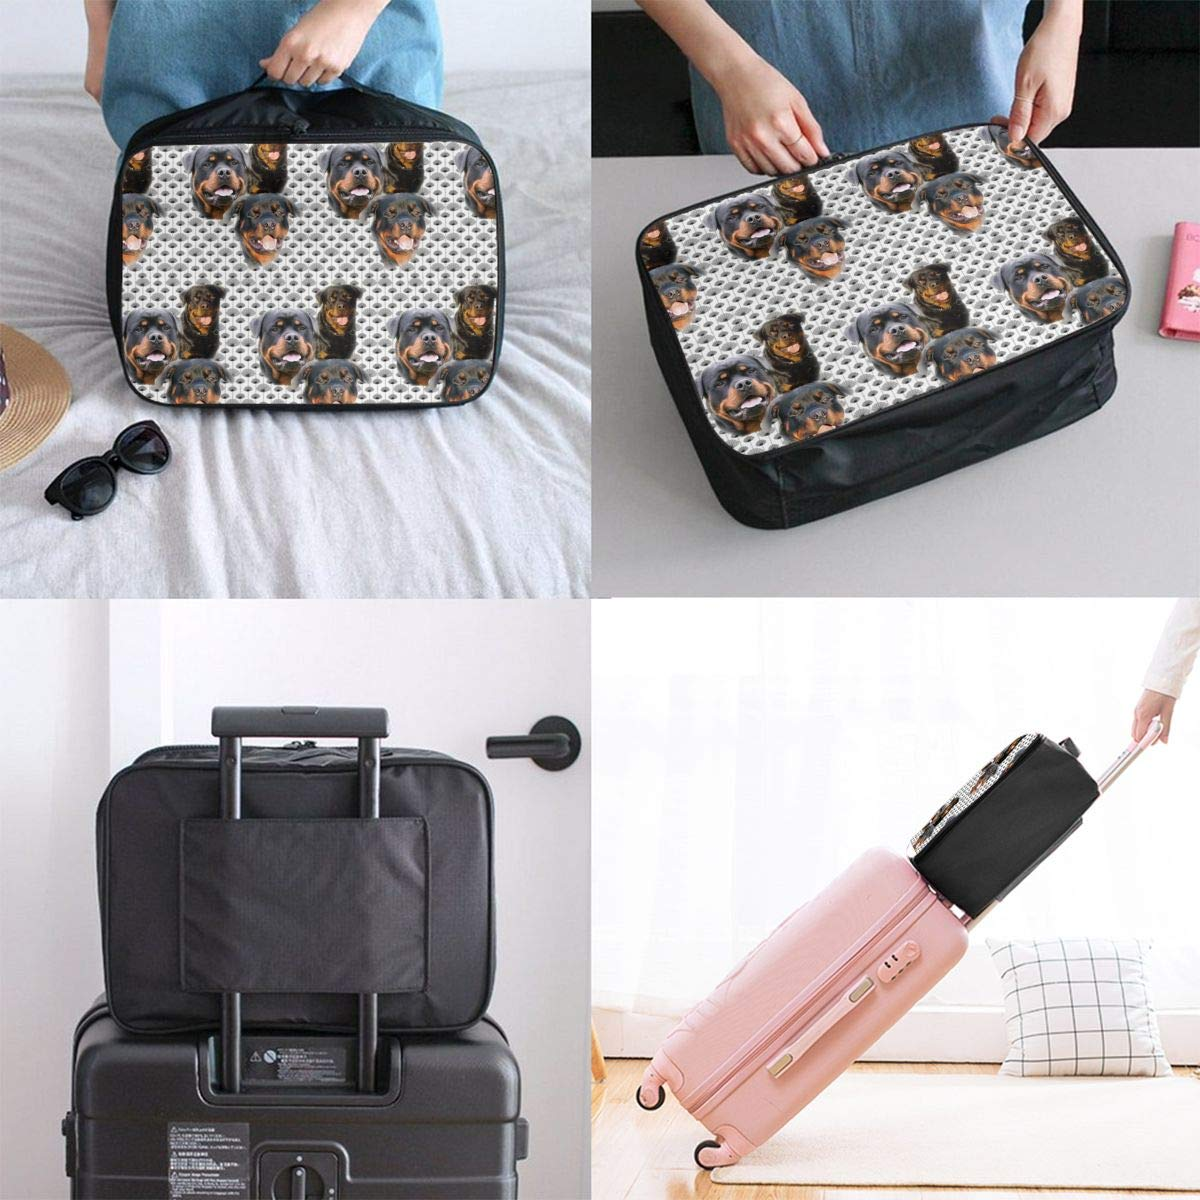 Rottweilers And Thistles Travel Duffel Bag Casual Large Capacity Portable Luggage Bag Suitcase Storage Bag Luggage Packing Tote Bag Weekend Trip